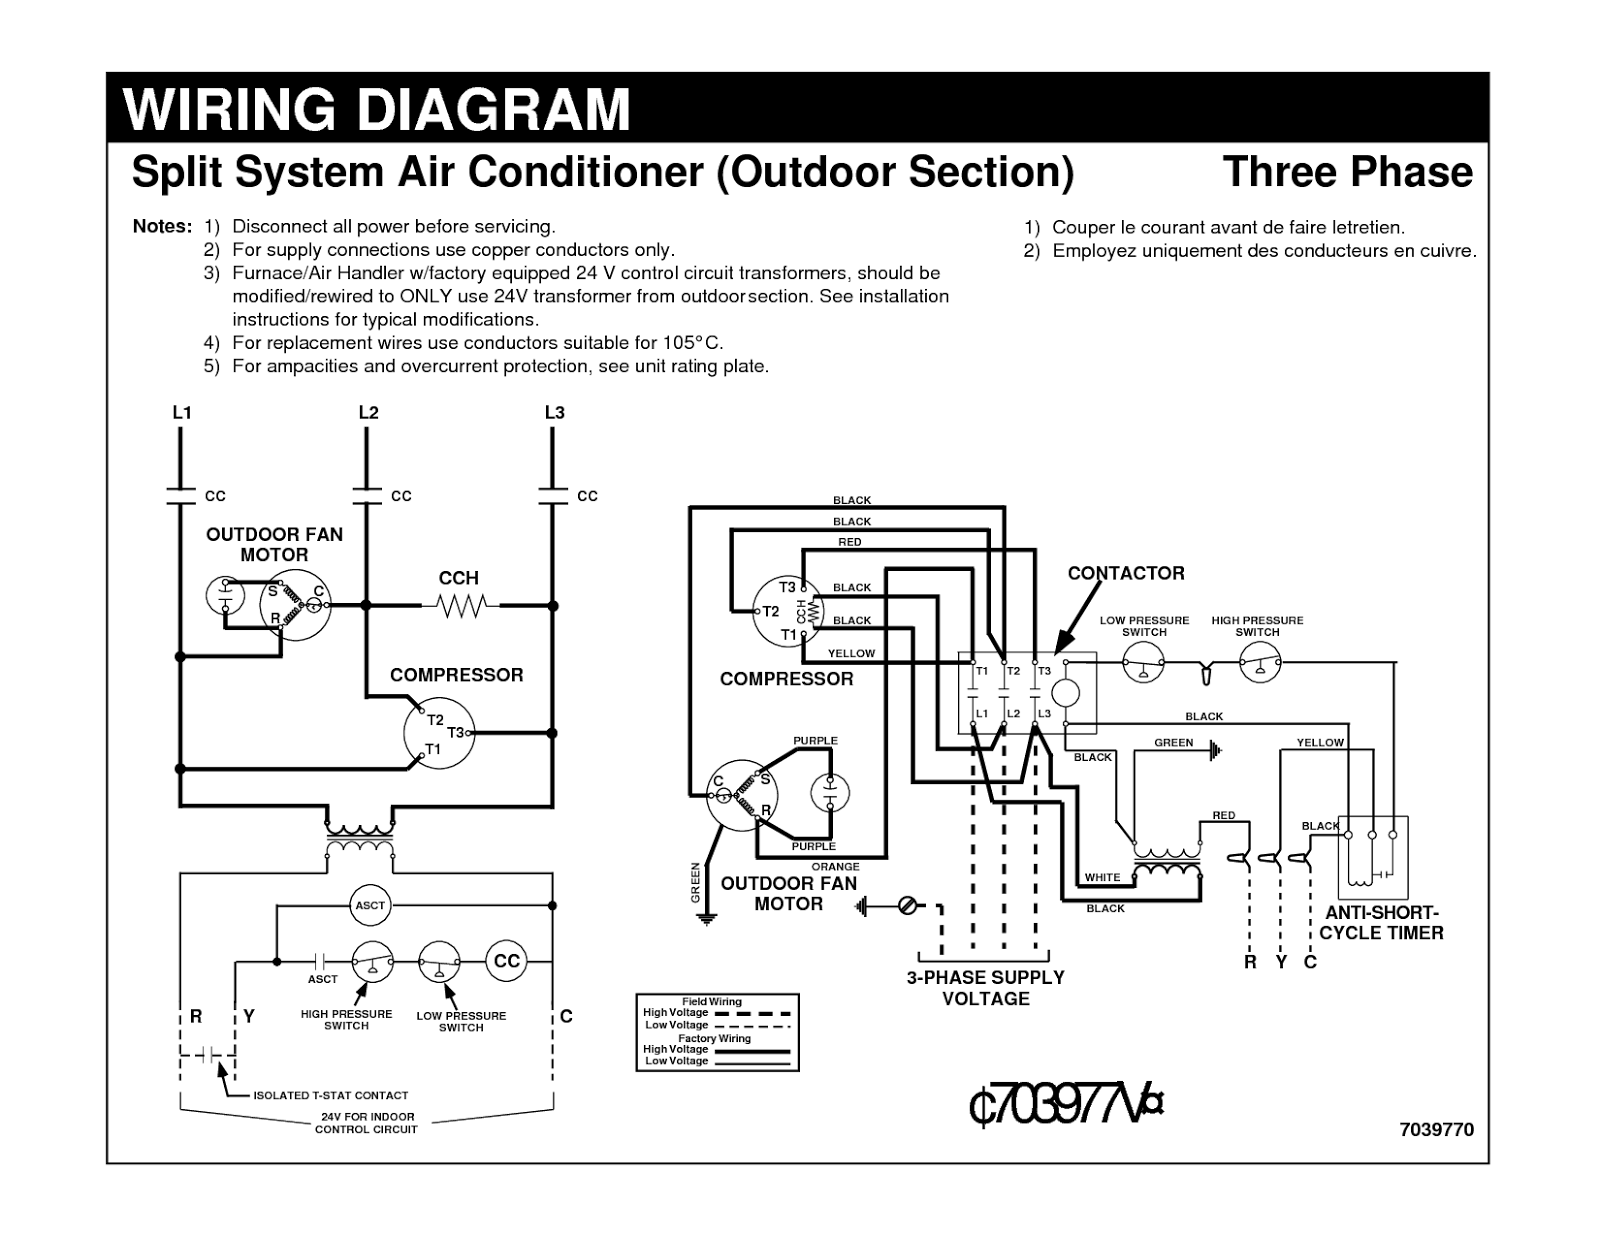 medium resolution of house wiring diagram hvac wiring diagrams rh 27 jennifer retzke de hvac electrical wiring diagram symbols household diagrams and schematics for hvac